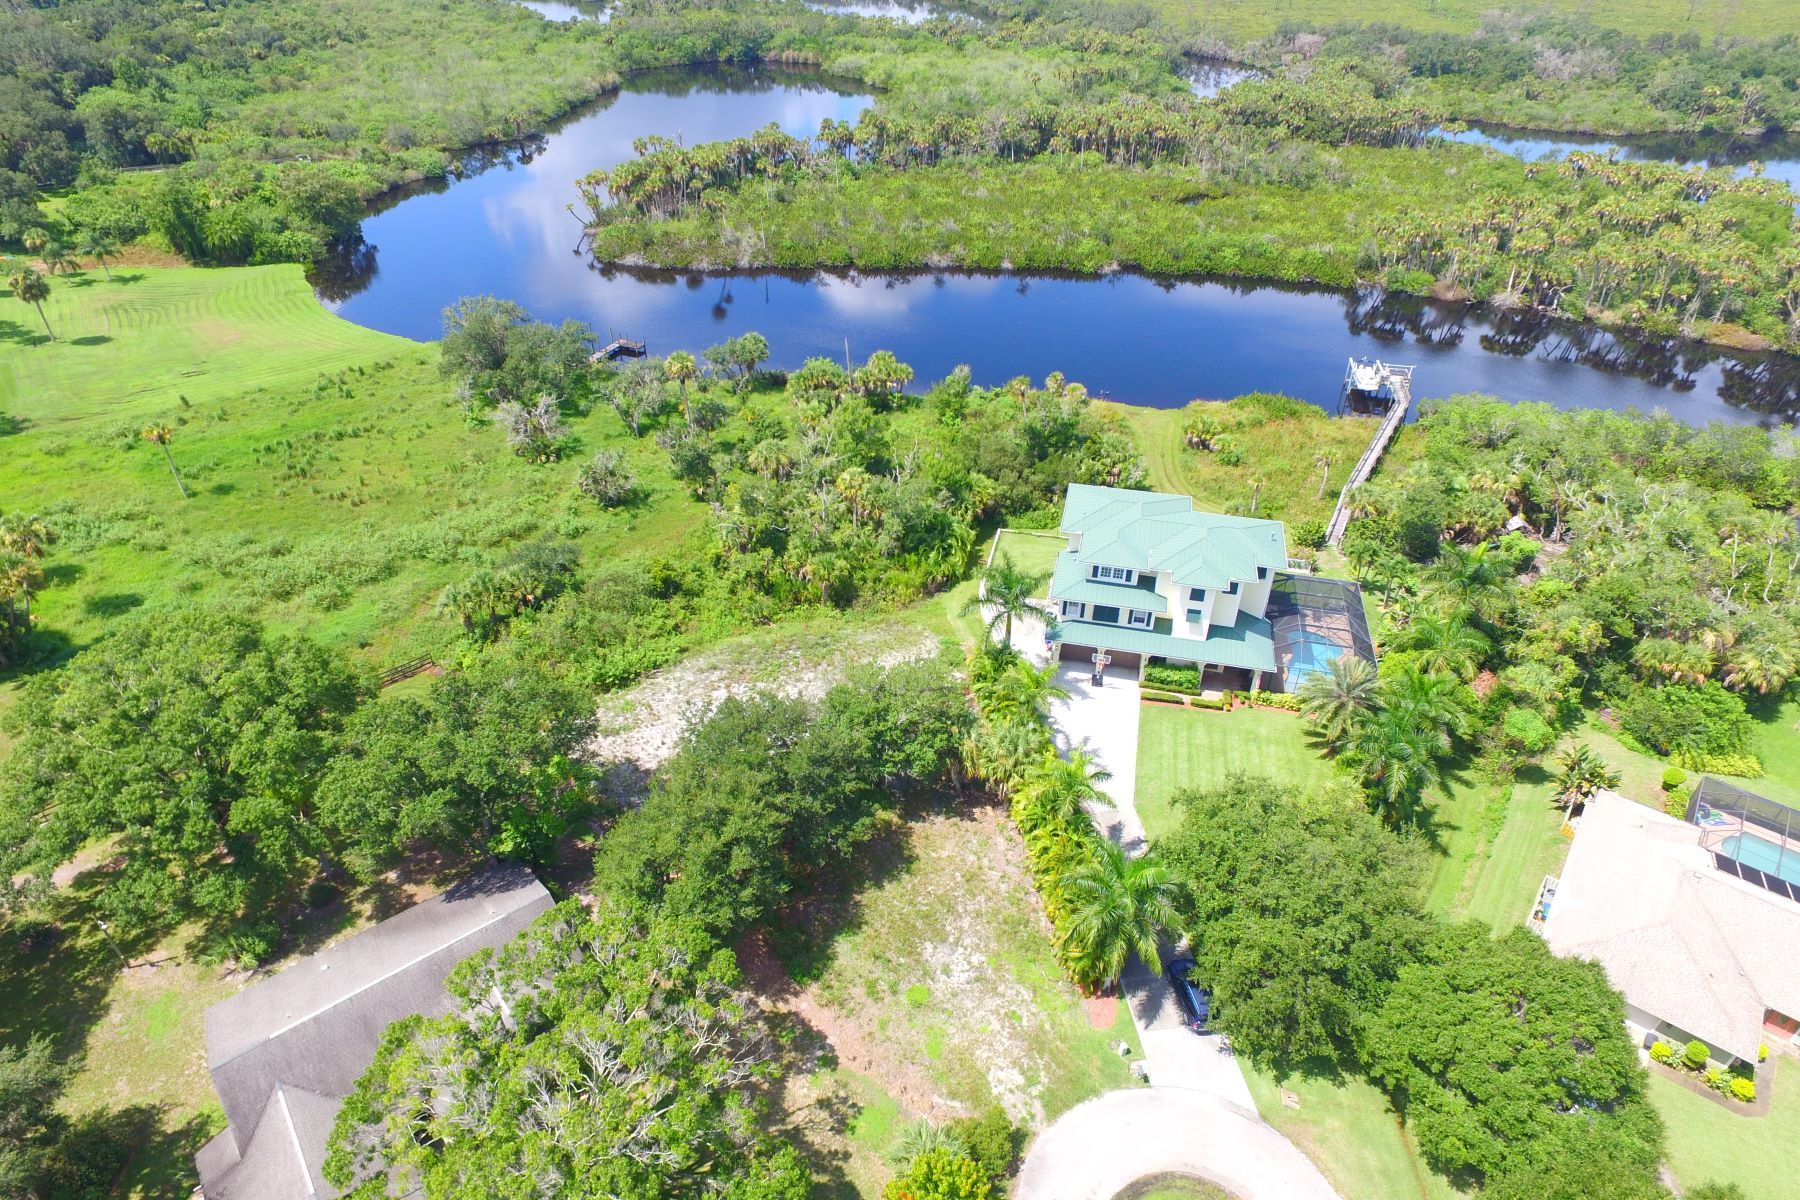 Property for Sale at Serene Location Overlooking the St. Sebastian River Preserve 845 Robin Lane Sebastian, Florida 32958 United States